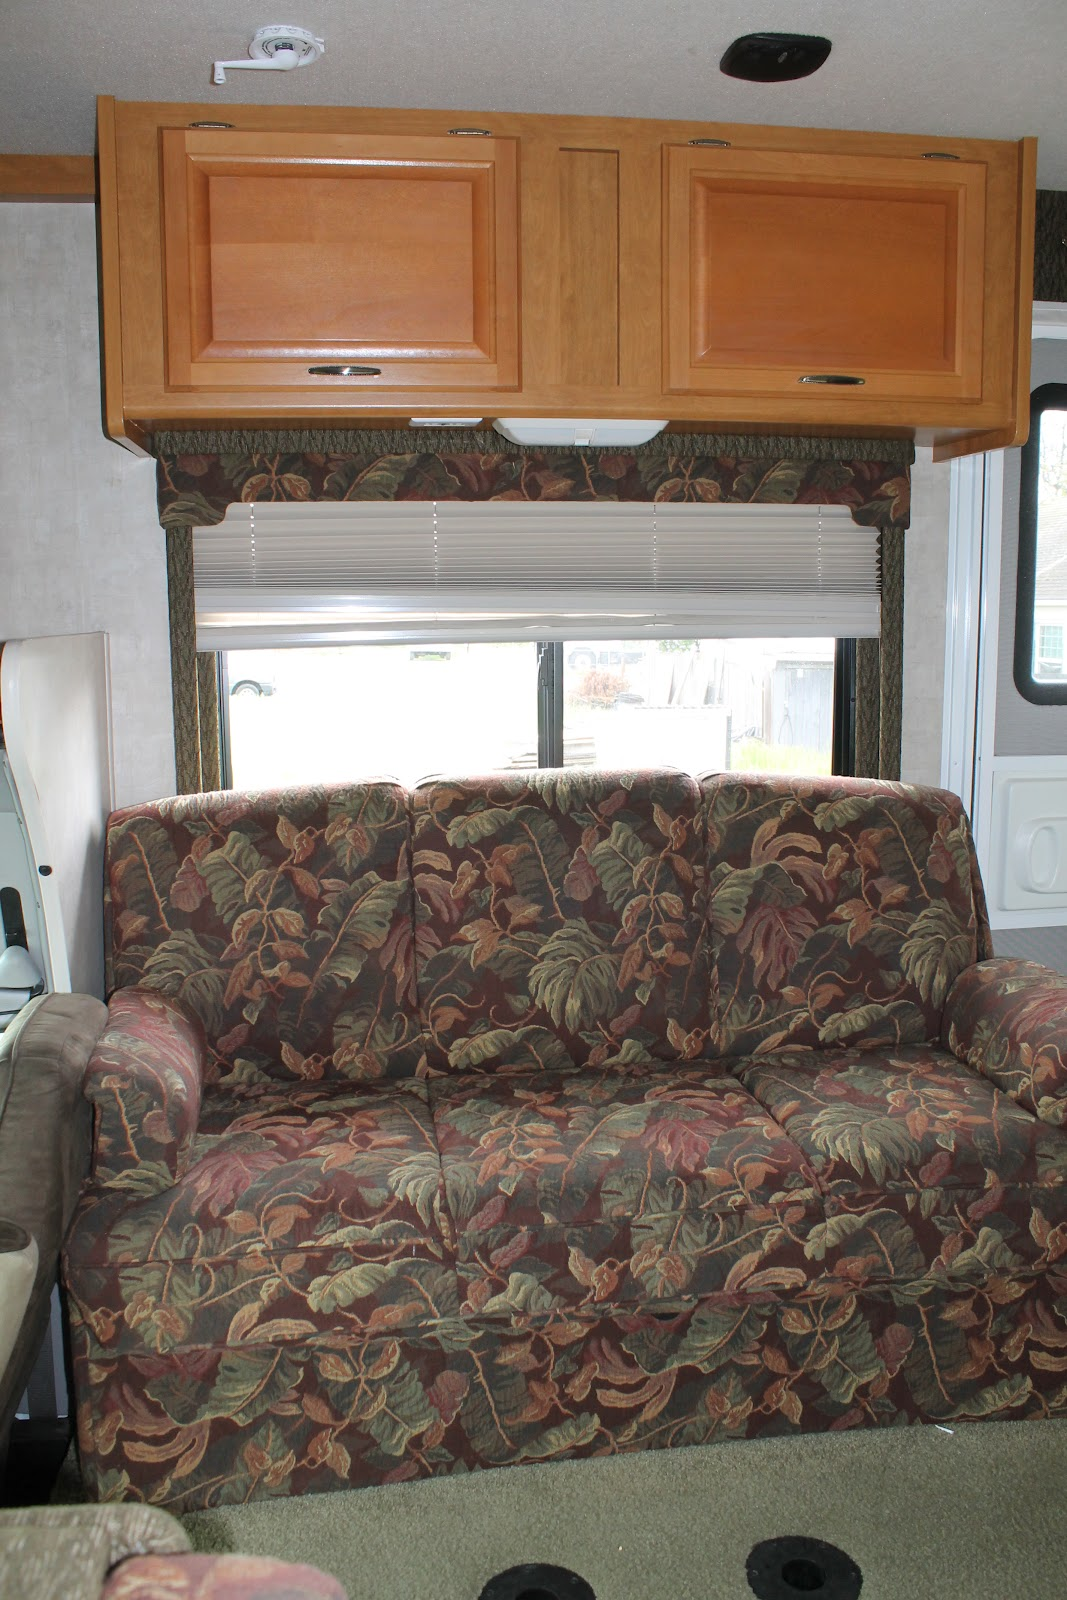 How To Reupholster >> Countryside Interiors - Transforming RVs and Trailers since the 80's: 2006 Fleetwood - New Wood ...